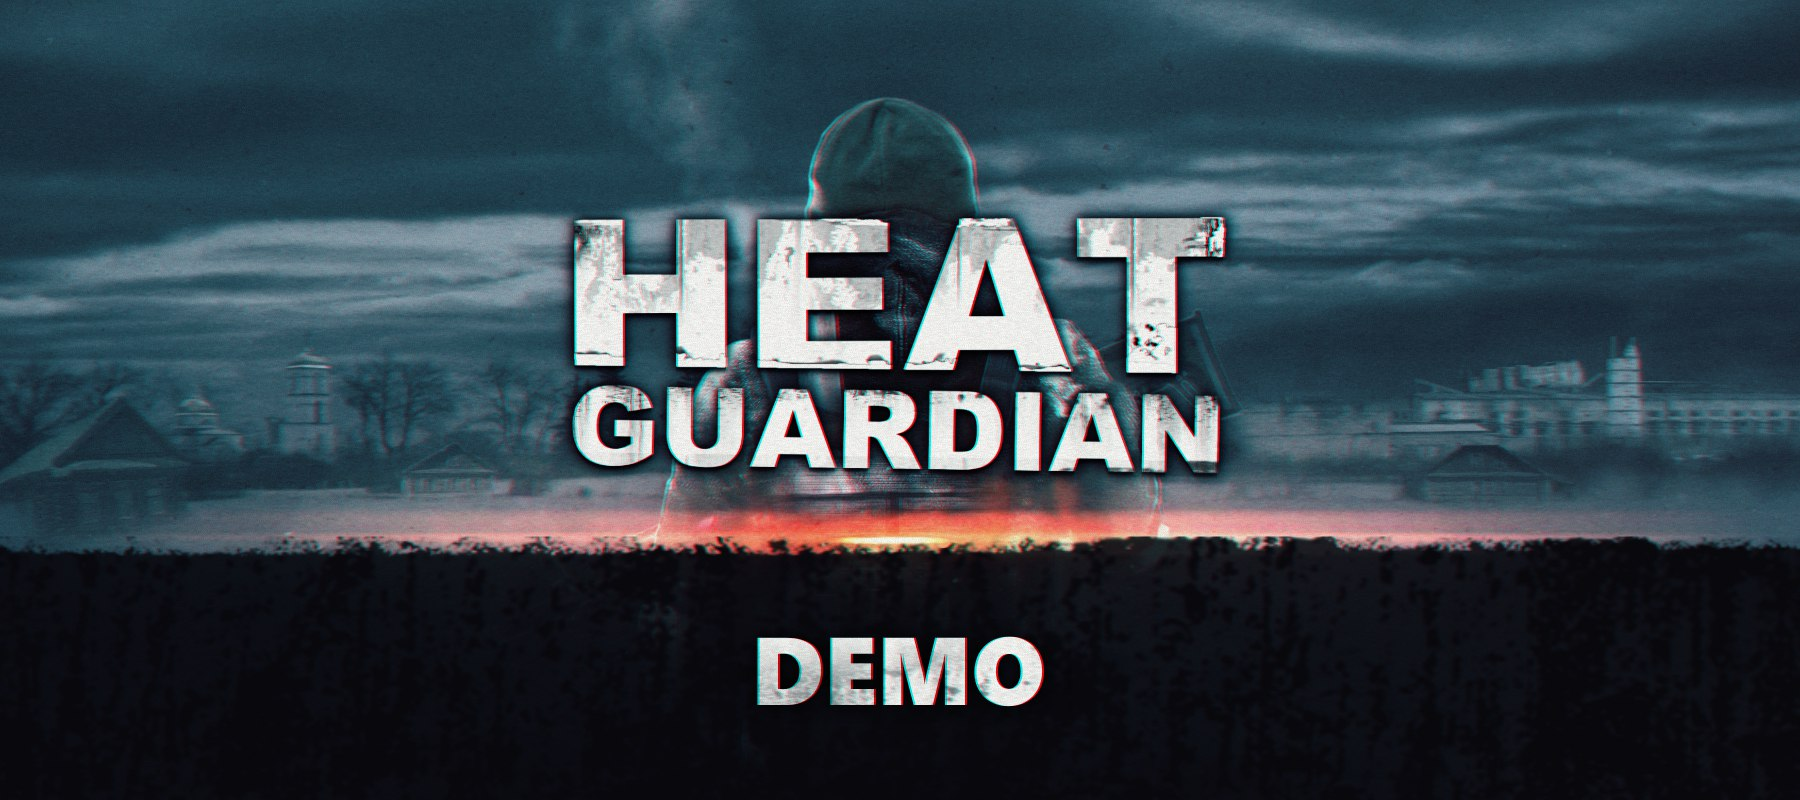 Heat Guardian Windows, Mac, Linux Game  Mod Db. 2 Year Colleges In Ohio Credit Cards For Sale. How Much Can We Afford Mortgage. Pain In My Lower Left Abdomen. Best Ssl Certificate Provider. How To Make Trademark Symbol. Colleges In St Petersburg Fl. Development Of Cancer Cells Dot Driver Log. Online Custom Stickers Windows 7 Event Viewer